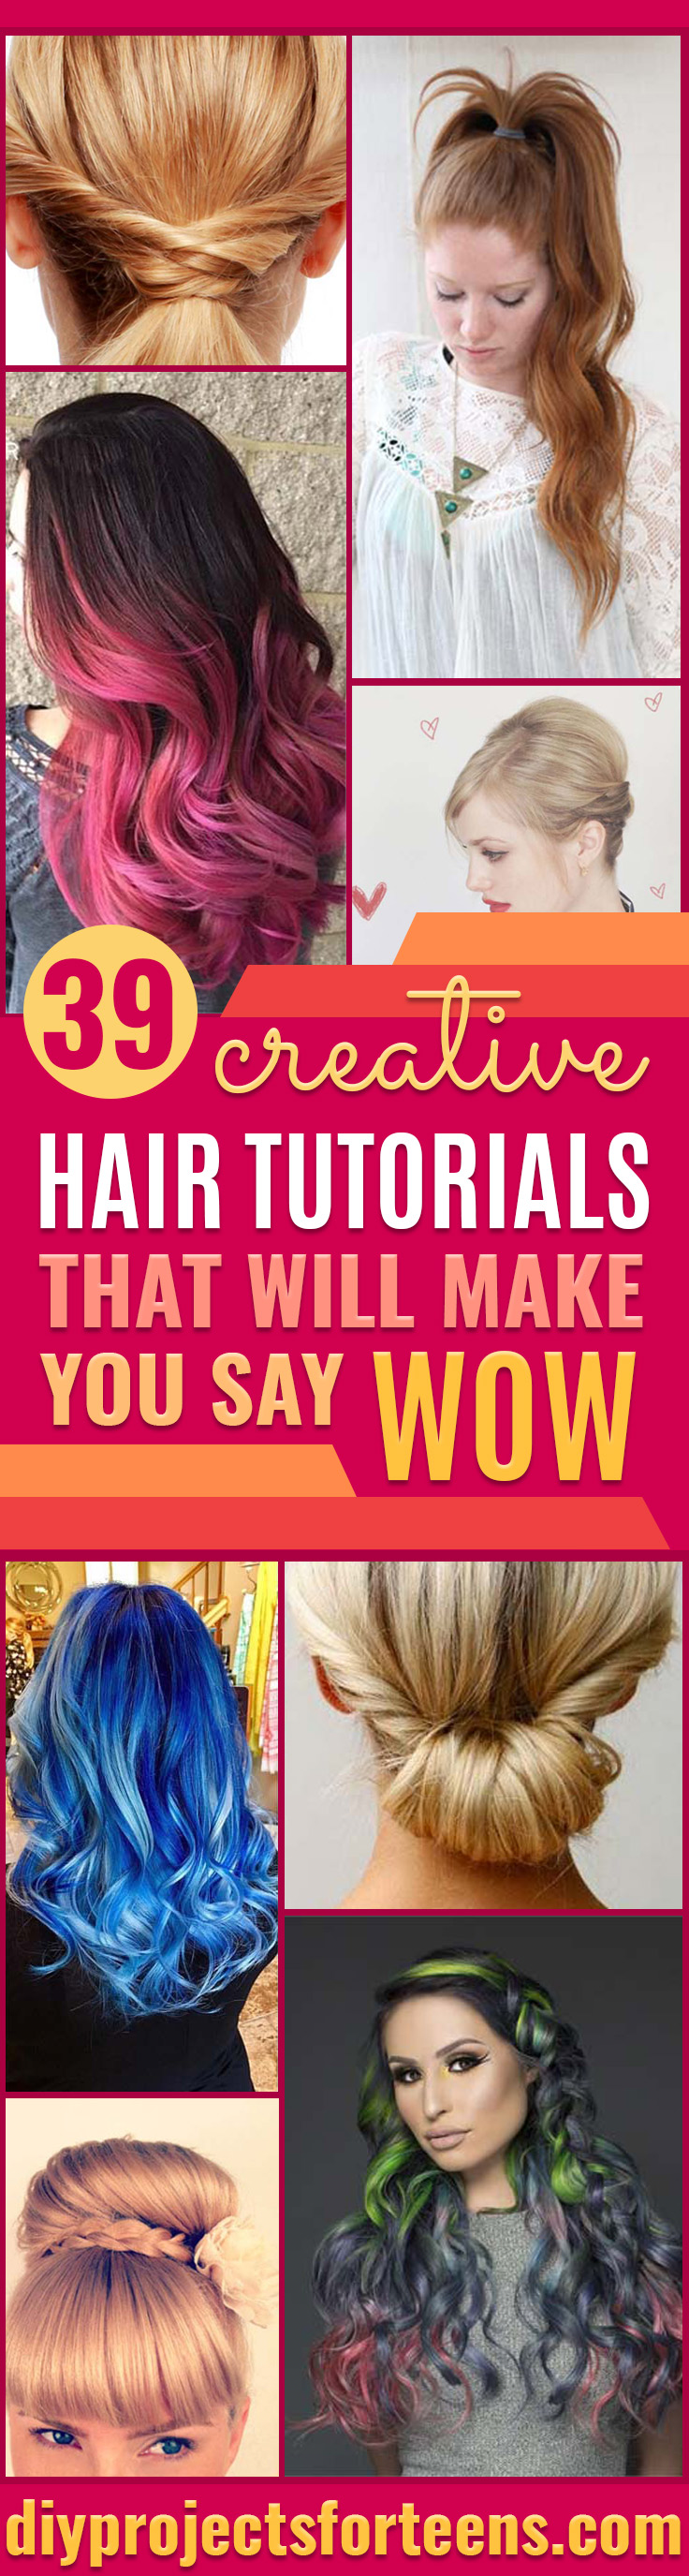 Creative DIY Hair Tutorials - Color, Rainbow, Galaxy and Unique Styles for Long, Short and Medium Hair - Braids, Dyes, Instructions for Teens and Women http://diyprojectsforteens.com/creative-hair-tutorials